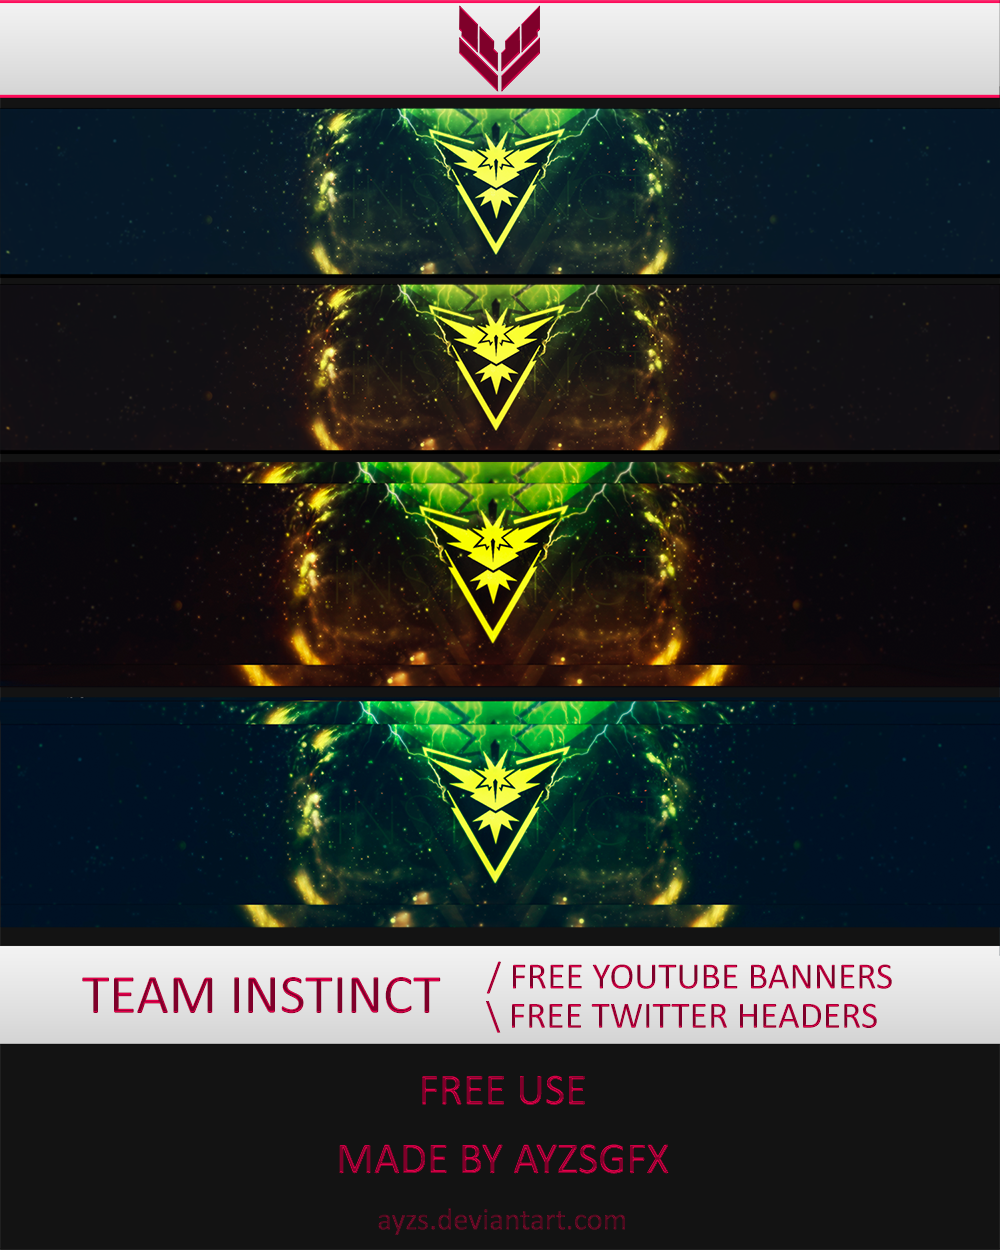 Team Instinct - Banners Preview_by_ayzs-dab71d7